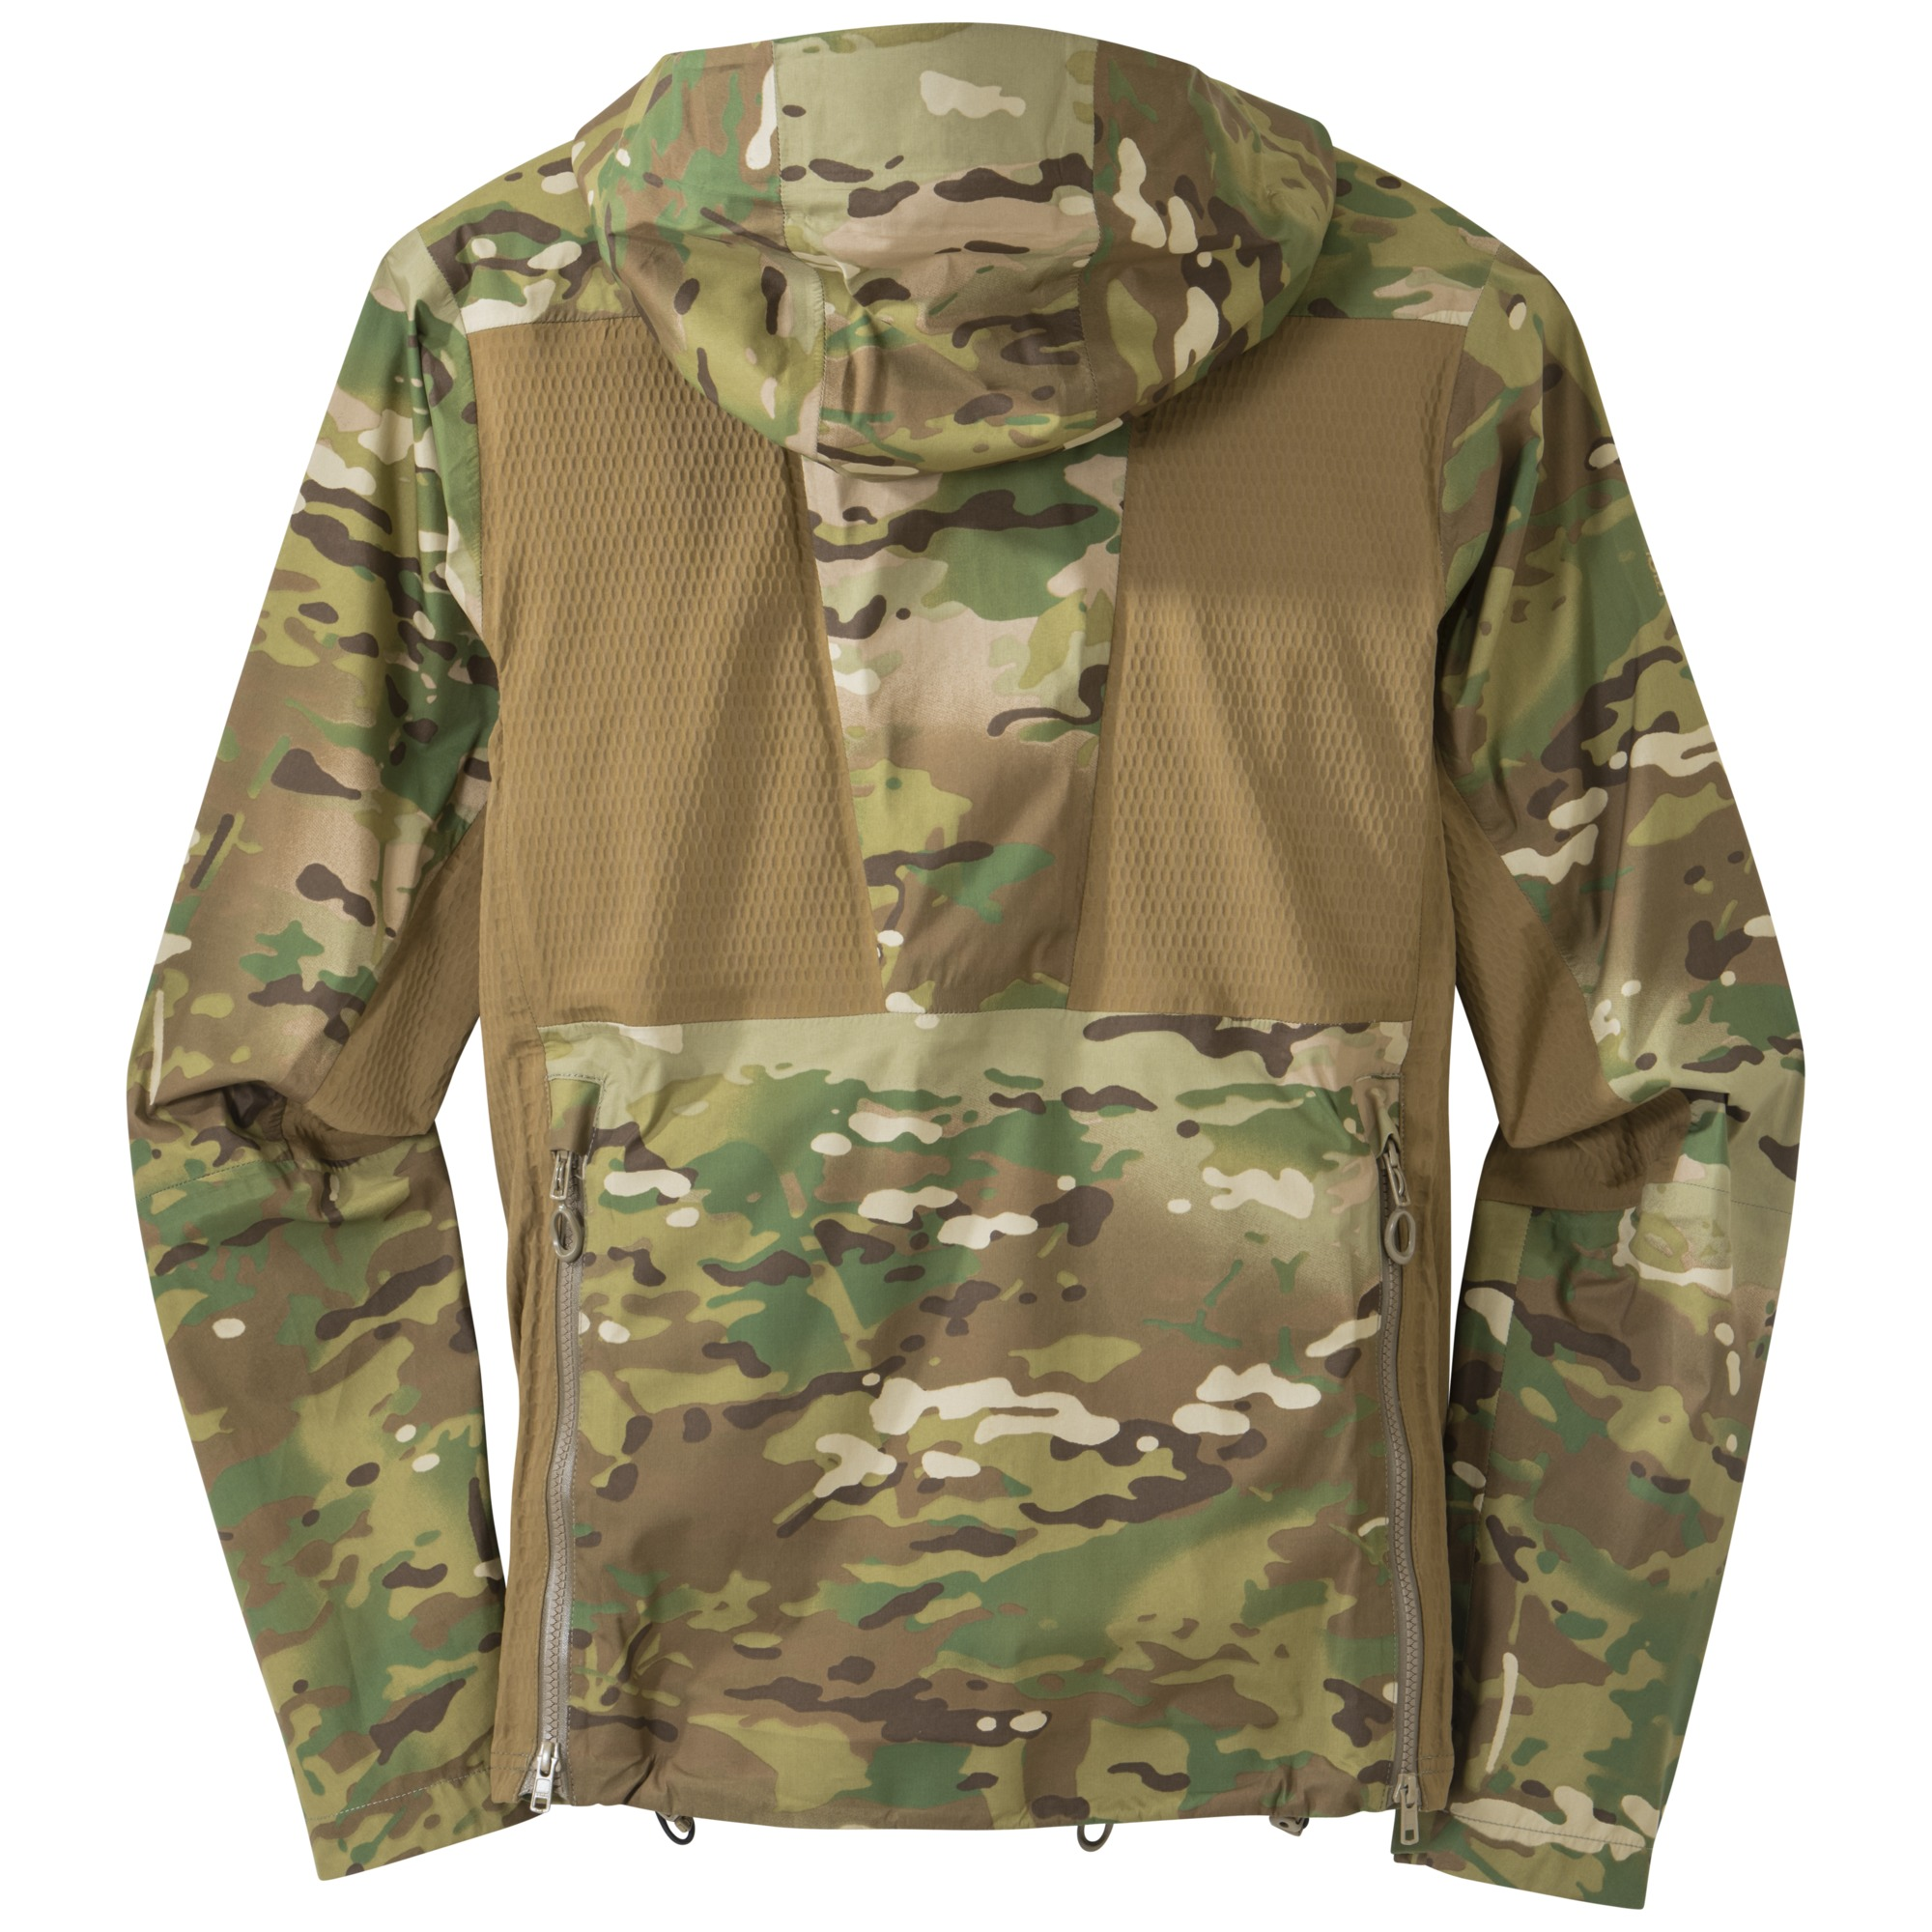 22bb8d02f3344 Infiltrator Jacket (Multicam) - multicam | Outdoor Research